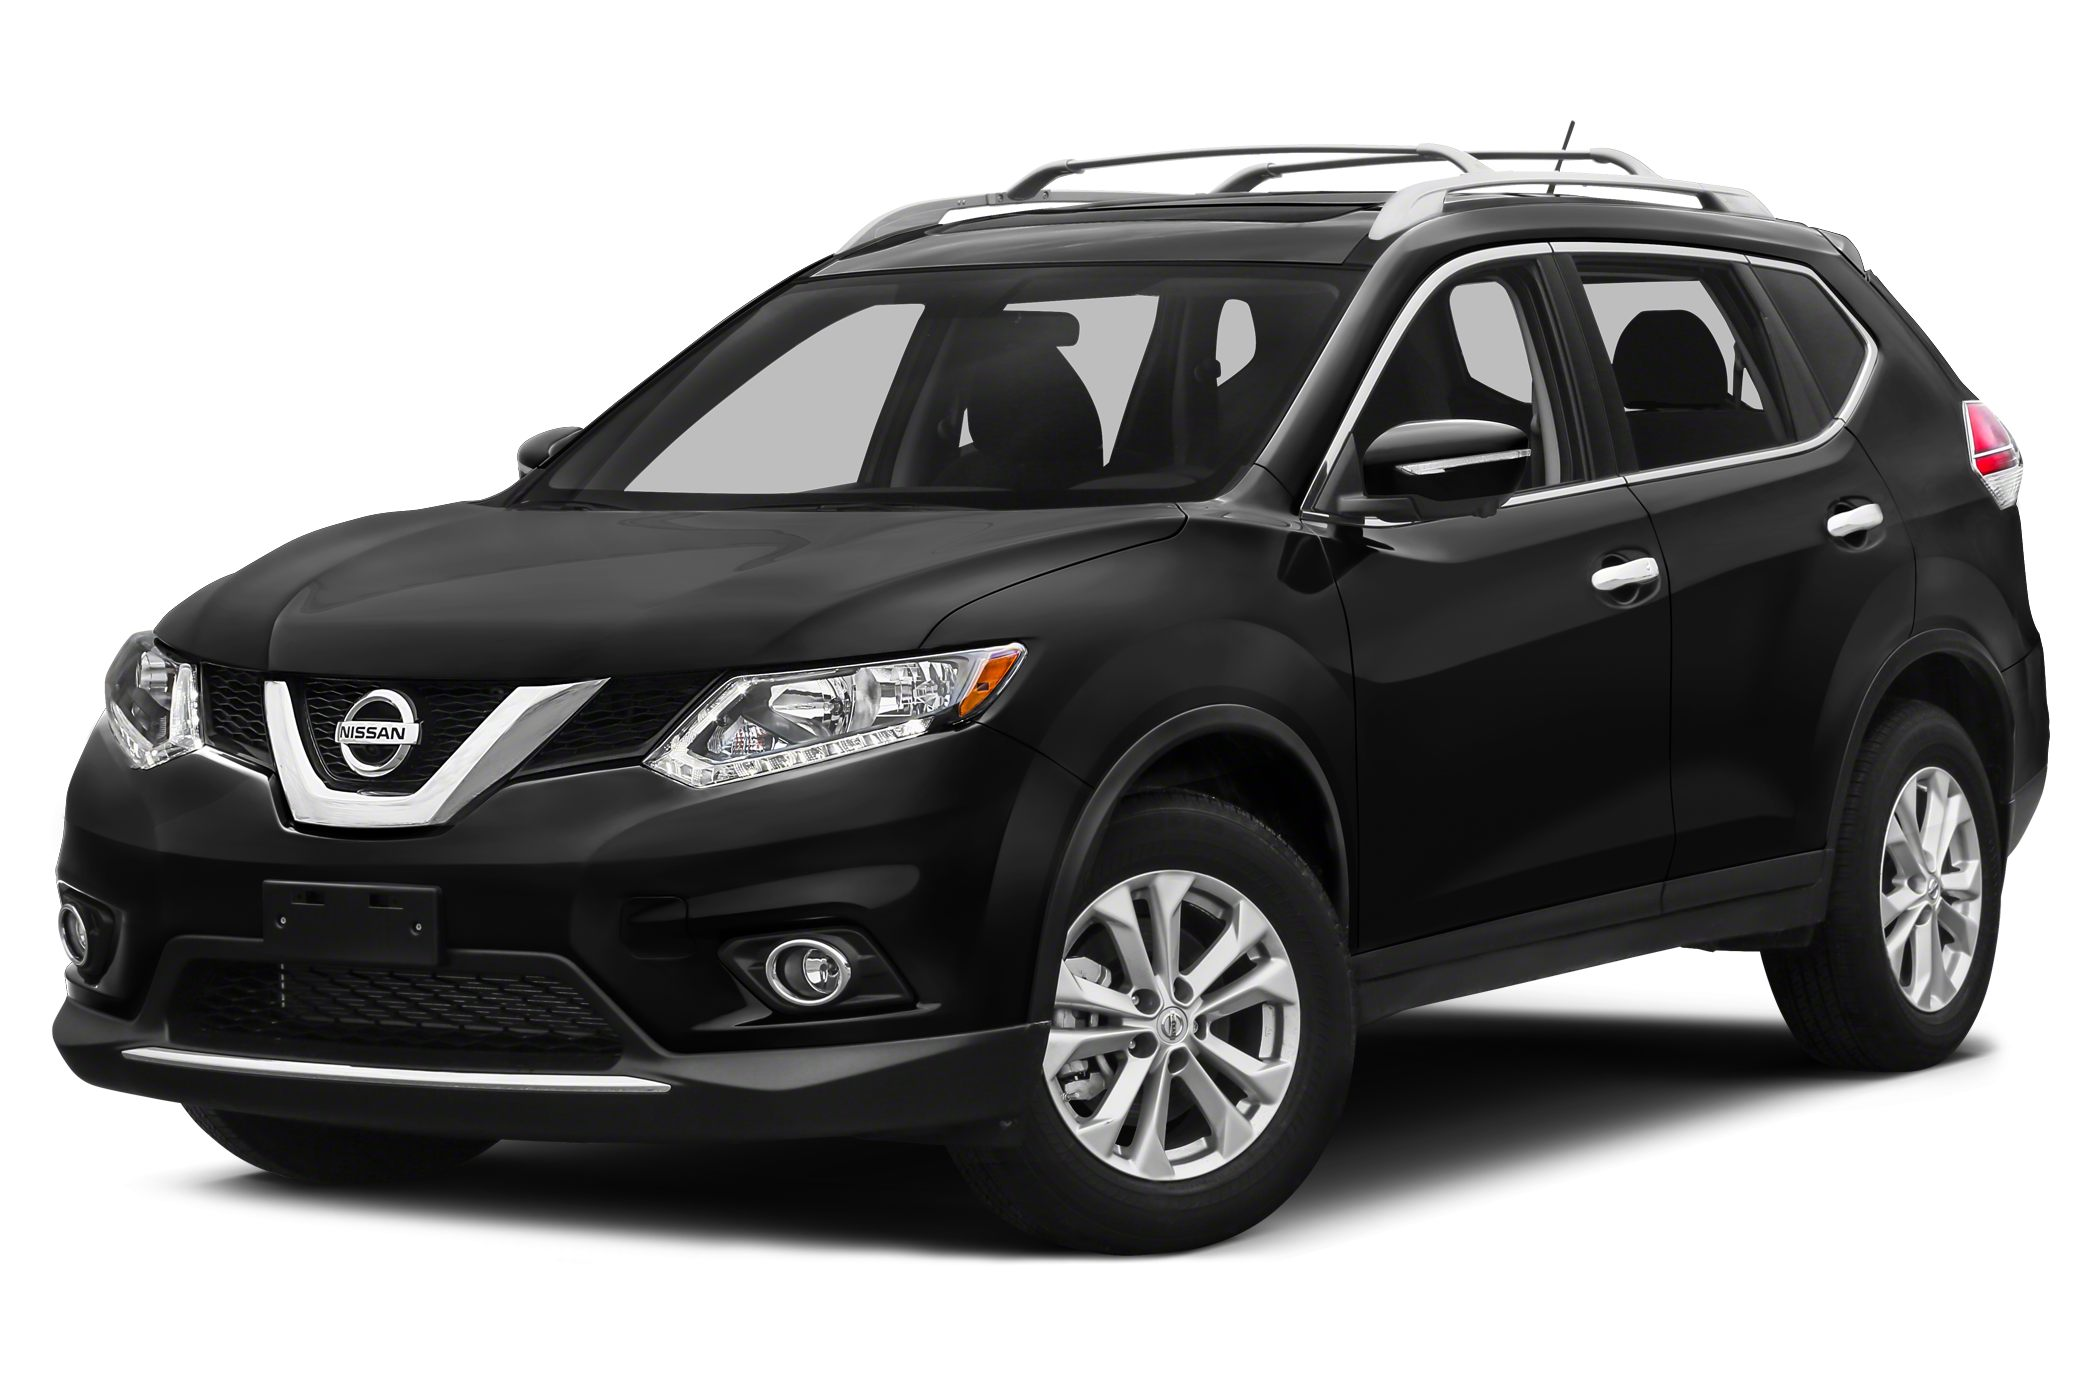 nissan recalls 2014 rogue again for fuel pump failure autoblog. Black Bedroom Furniture Sets. Home Design Ideas